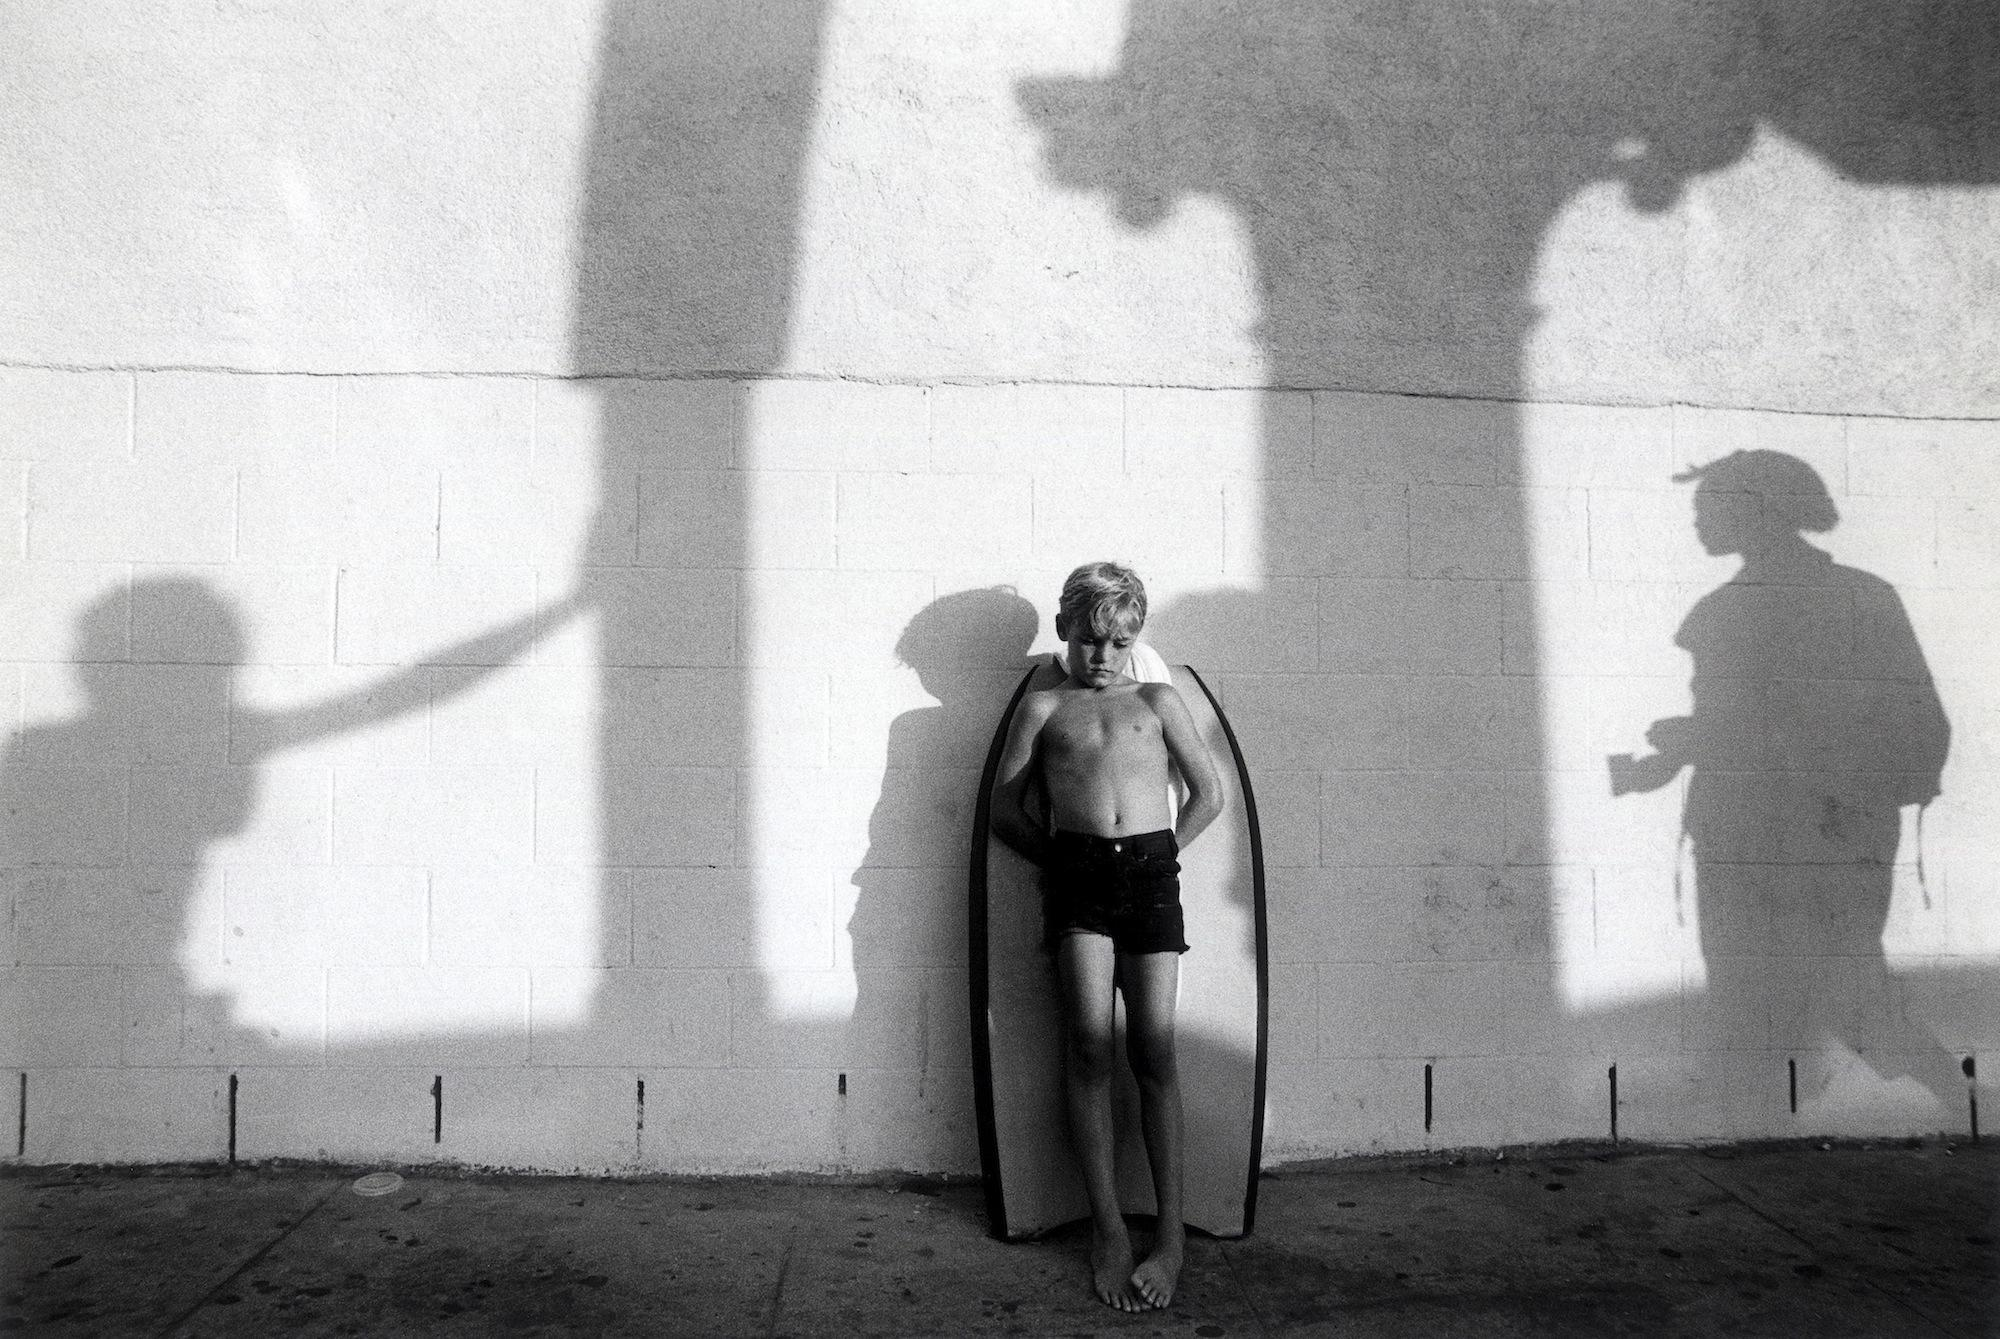 claudio-edinger-on-reuniting-with-the-venice-beach-eccentrics-he-photographed-over-30-years-ago-body-image-1470258210